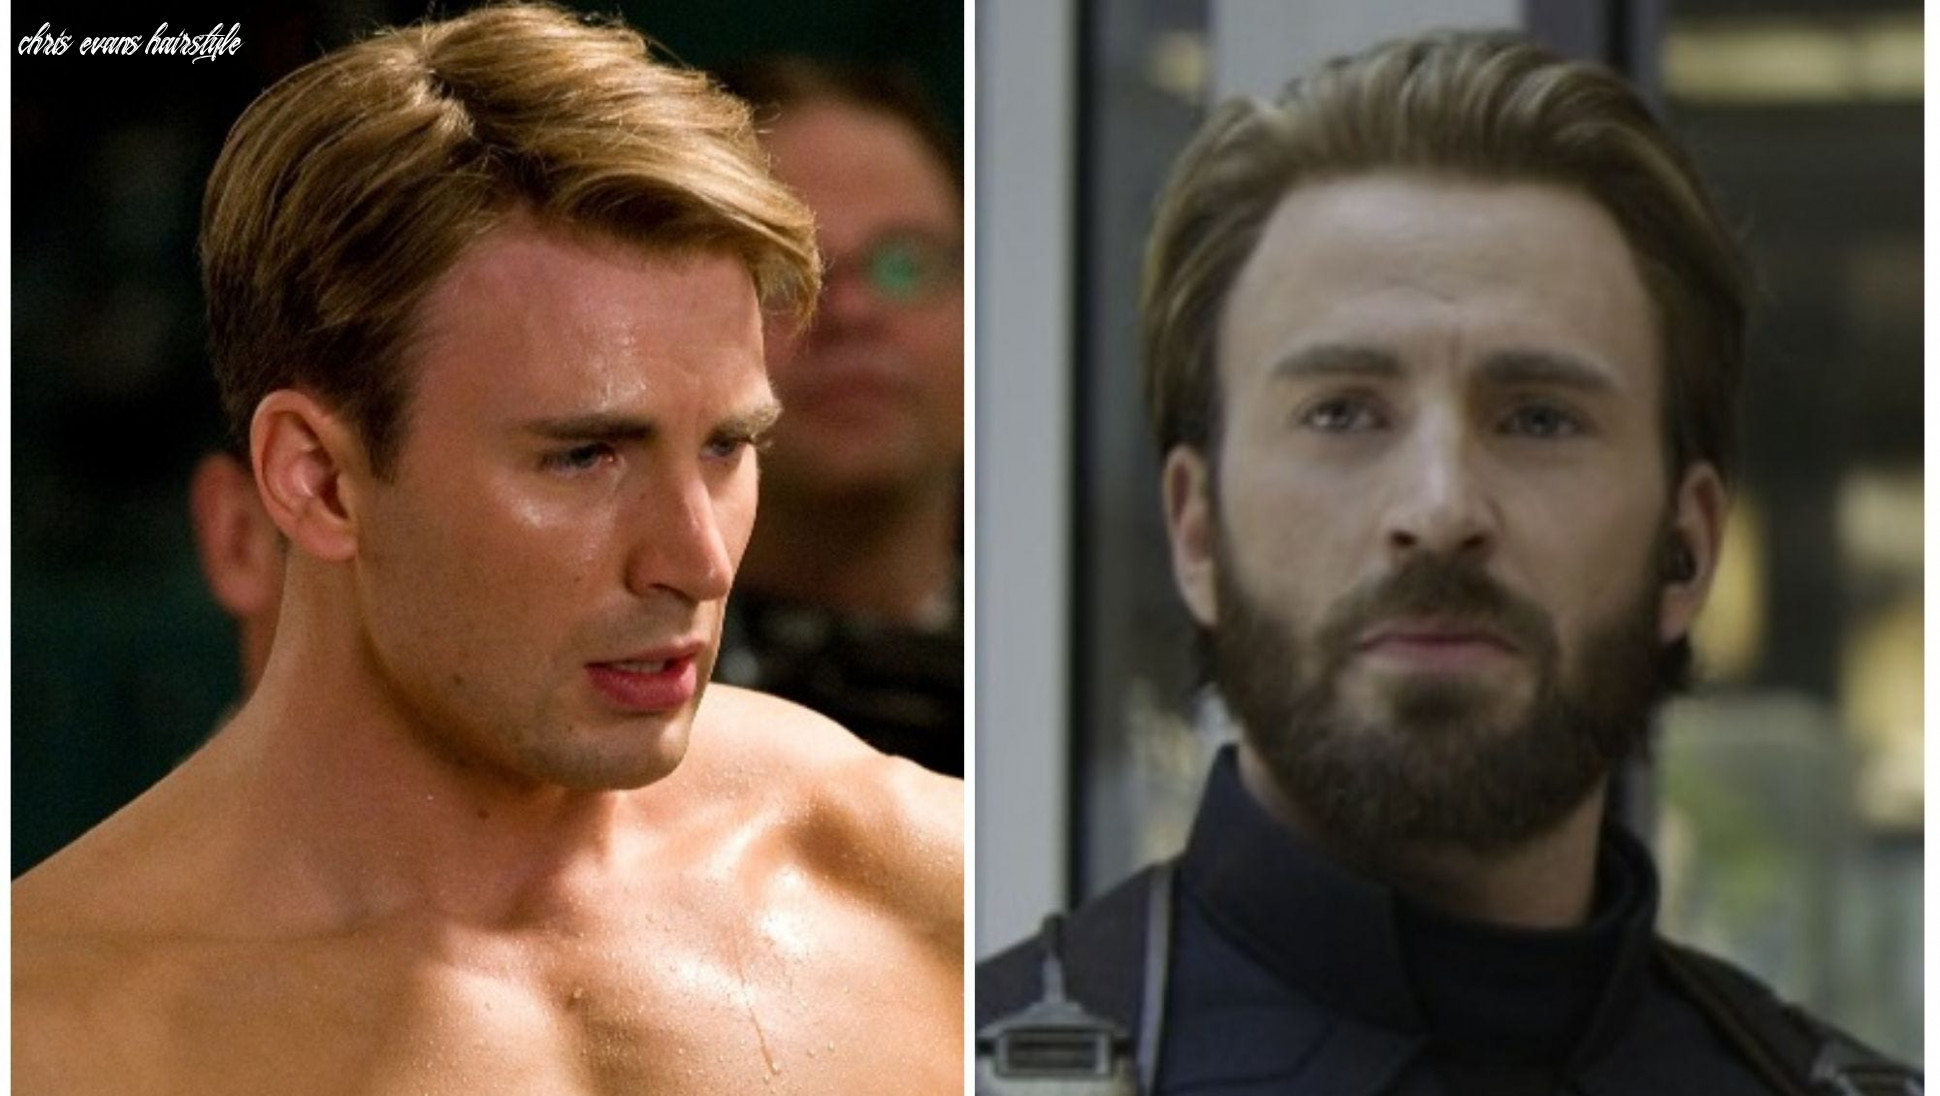 Captain america infinity war haircut which haircut suits my face chris evans hairstyle